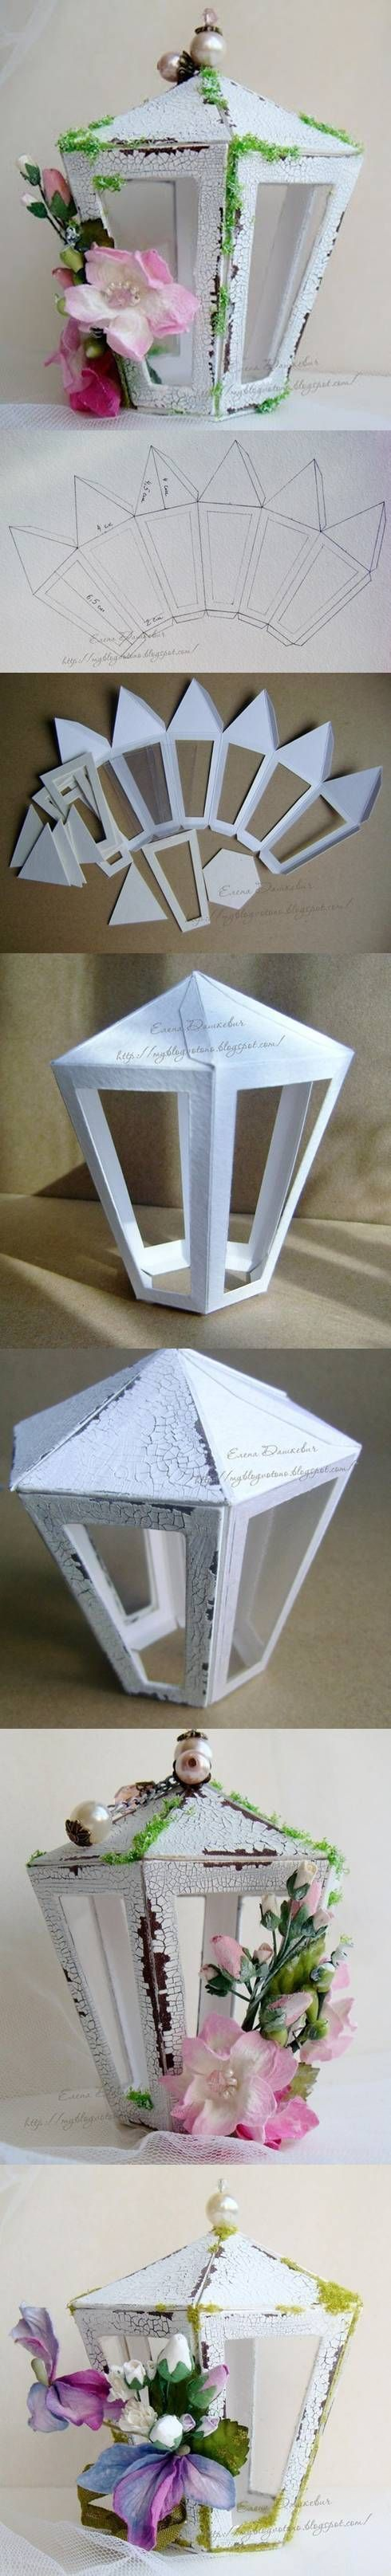 DIY Cardboard Lantern Template DIY Projects | UsefulDIY.com Follow Us on Facebook ==> http://www.facebook.com/UsefulDiy